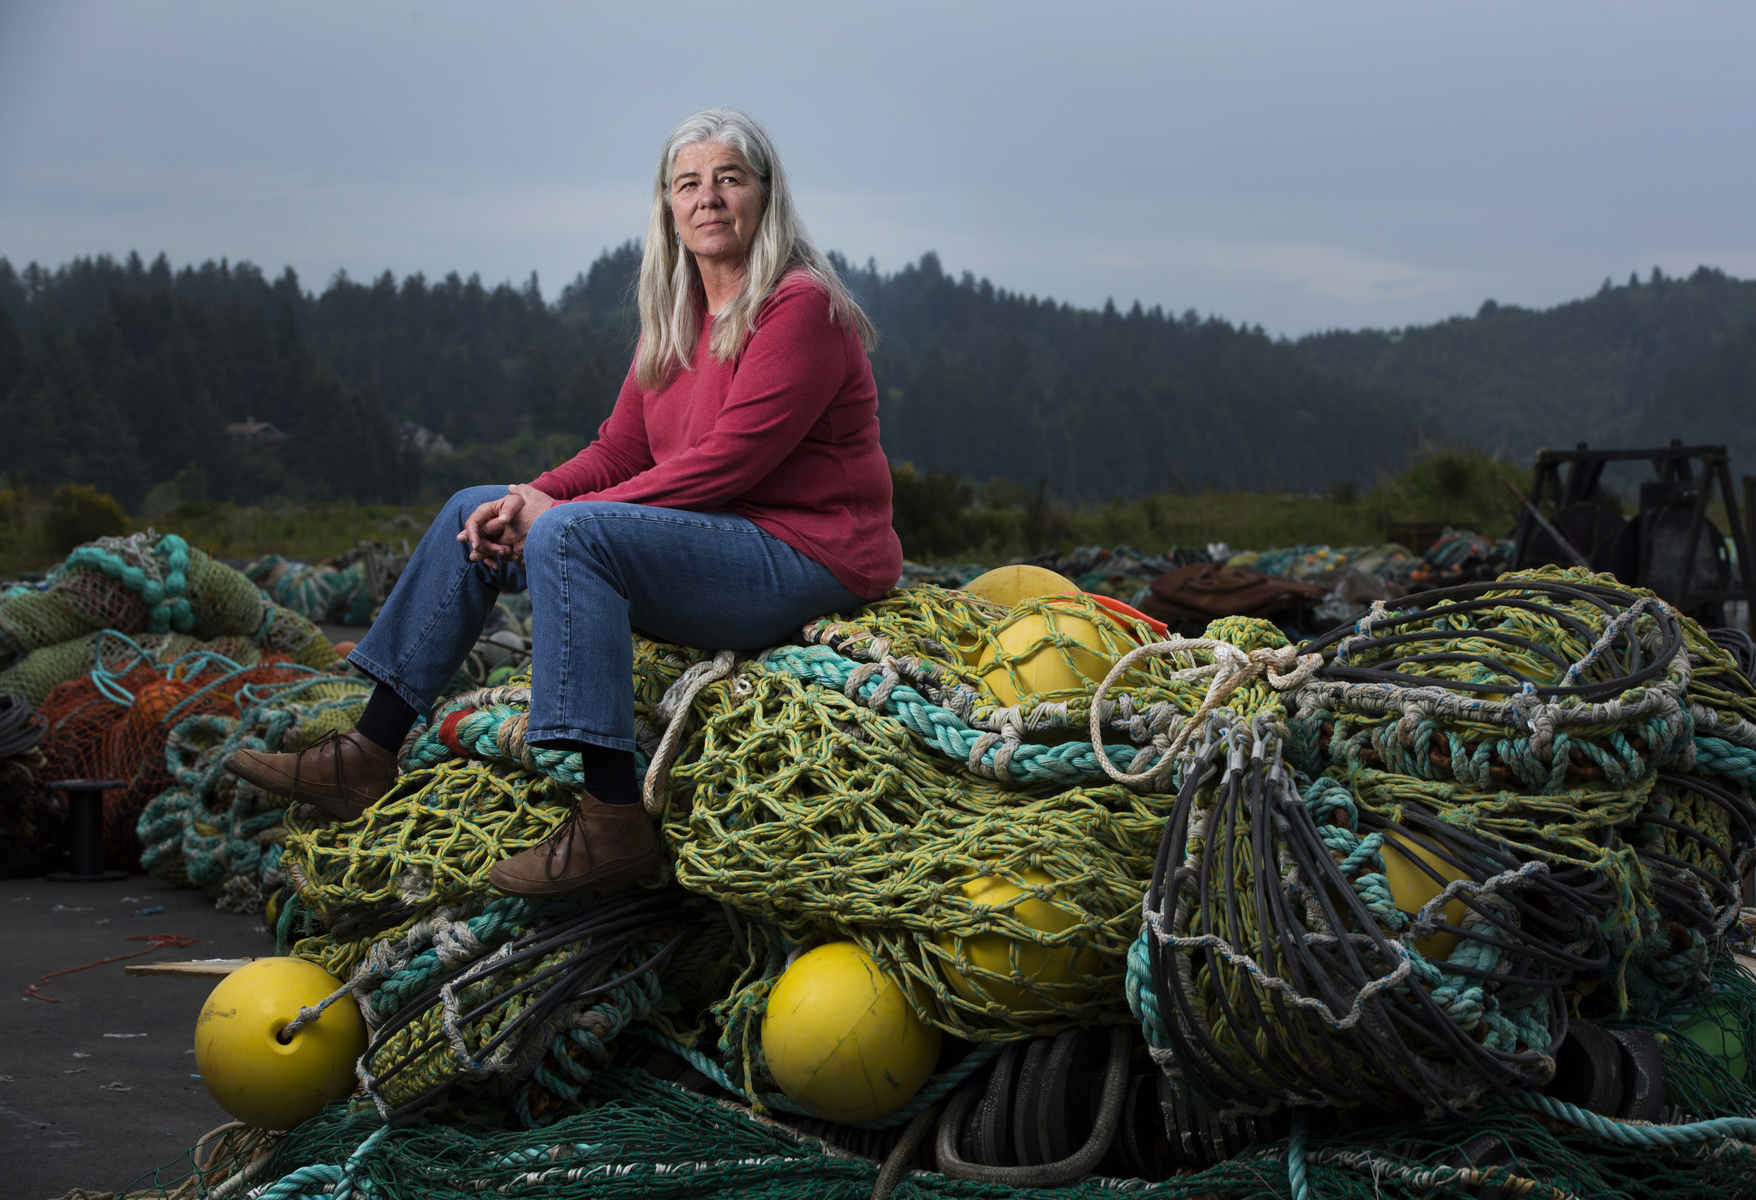 Fishing net manufacturer Sara Skamser, Newport, Oregon